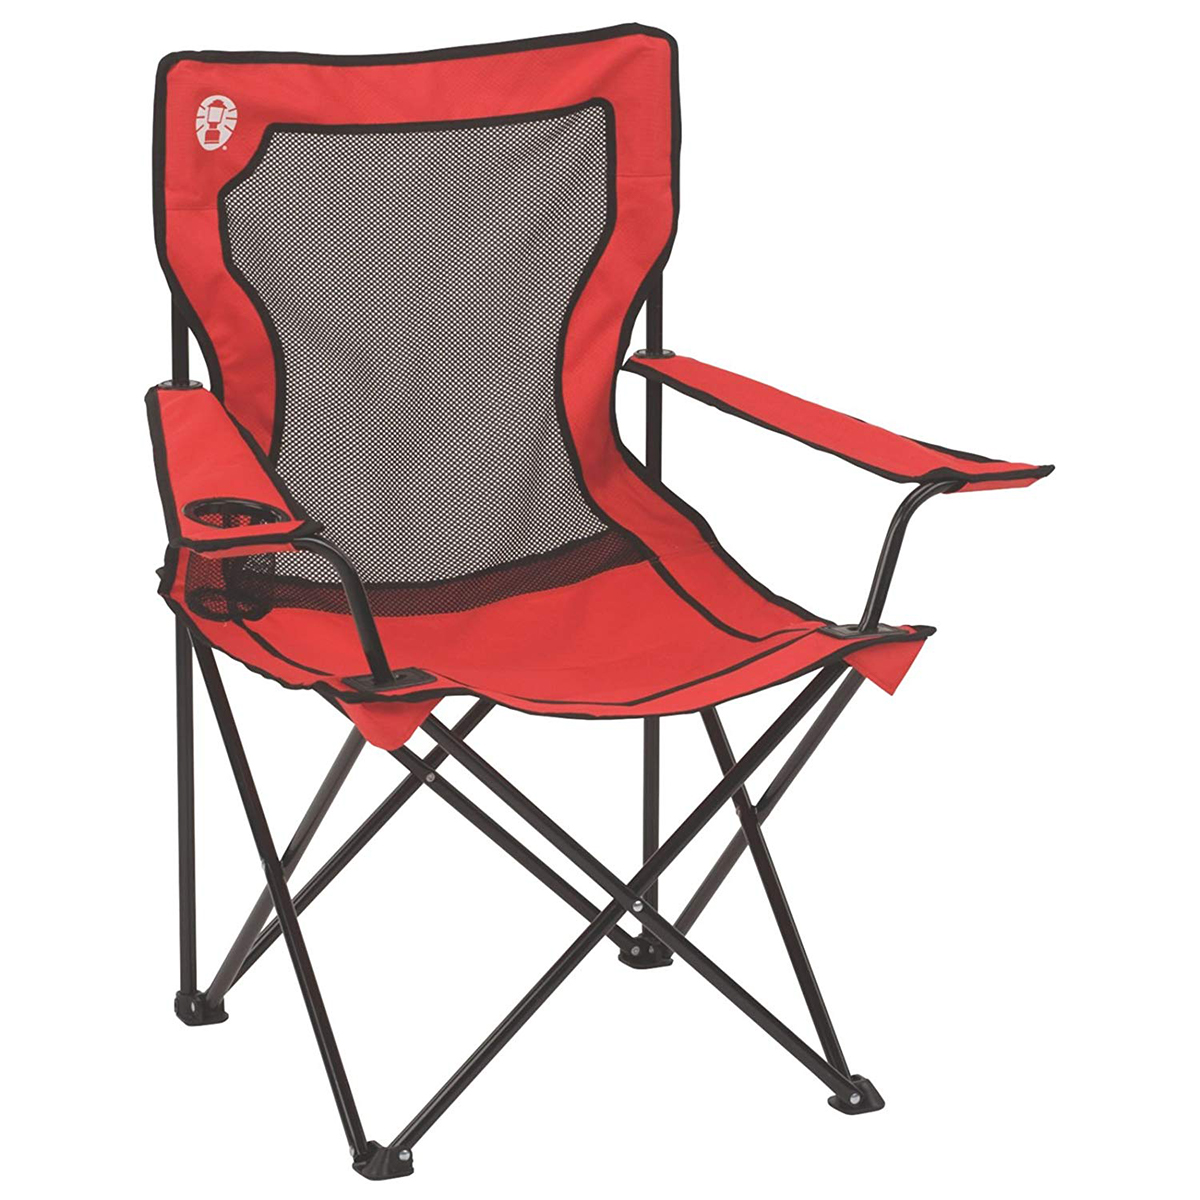 Coleman Broadband Camping Chair